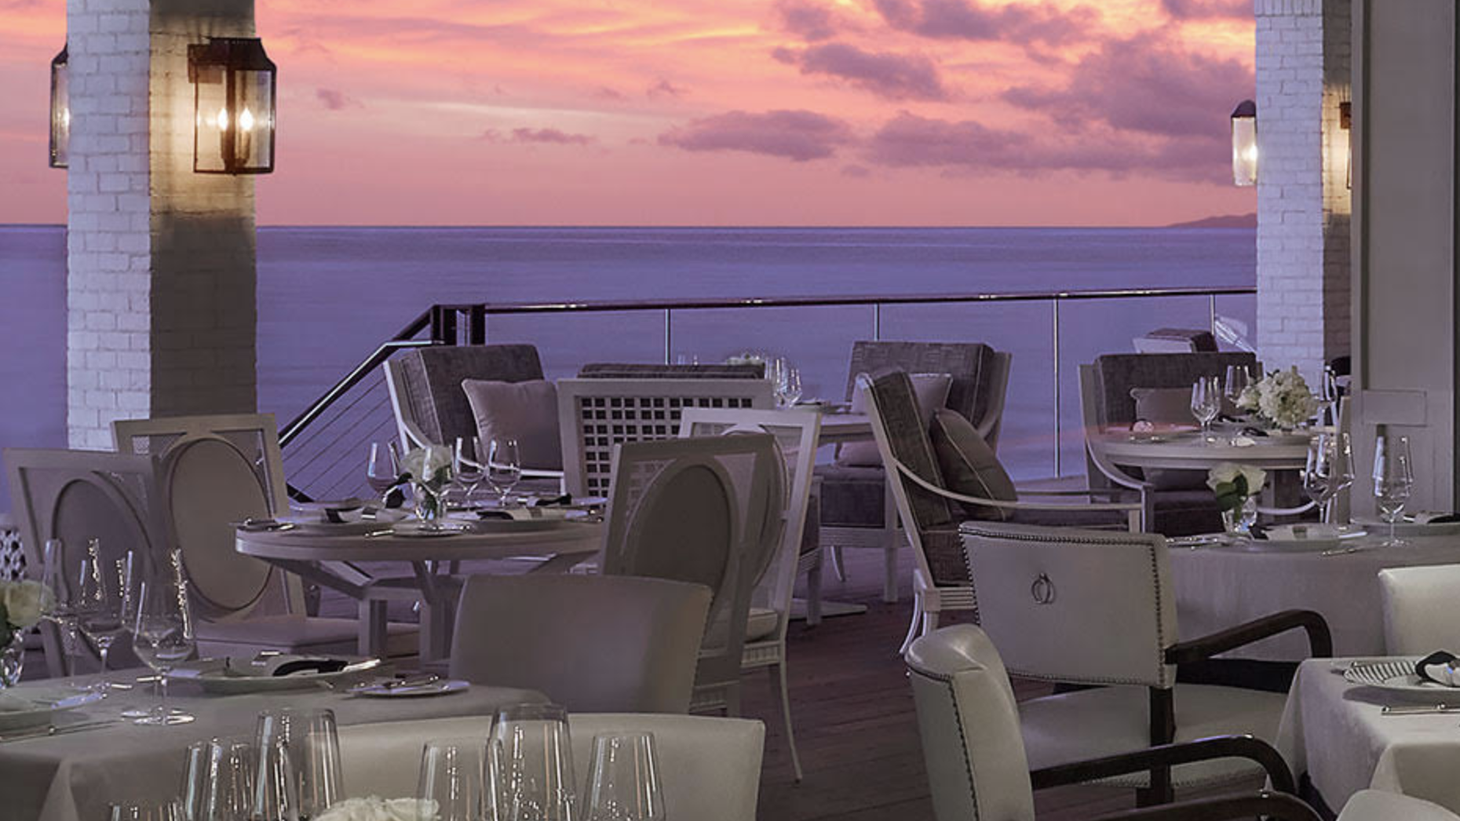 The Rosewood Miramar hotel offers seaside dining with Caruso's